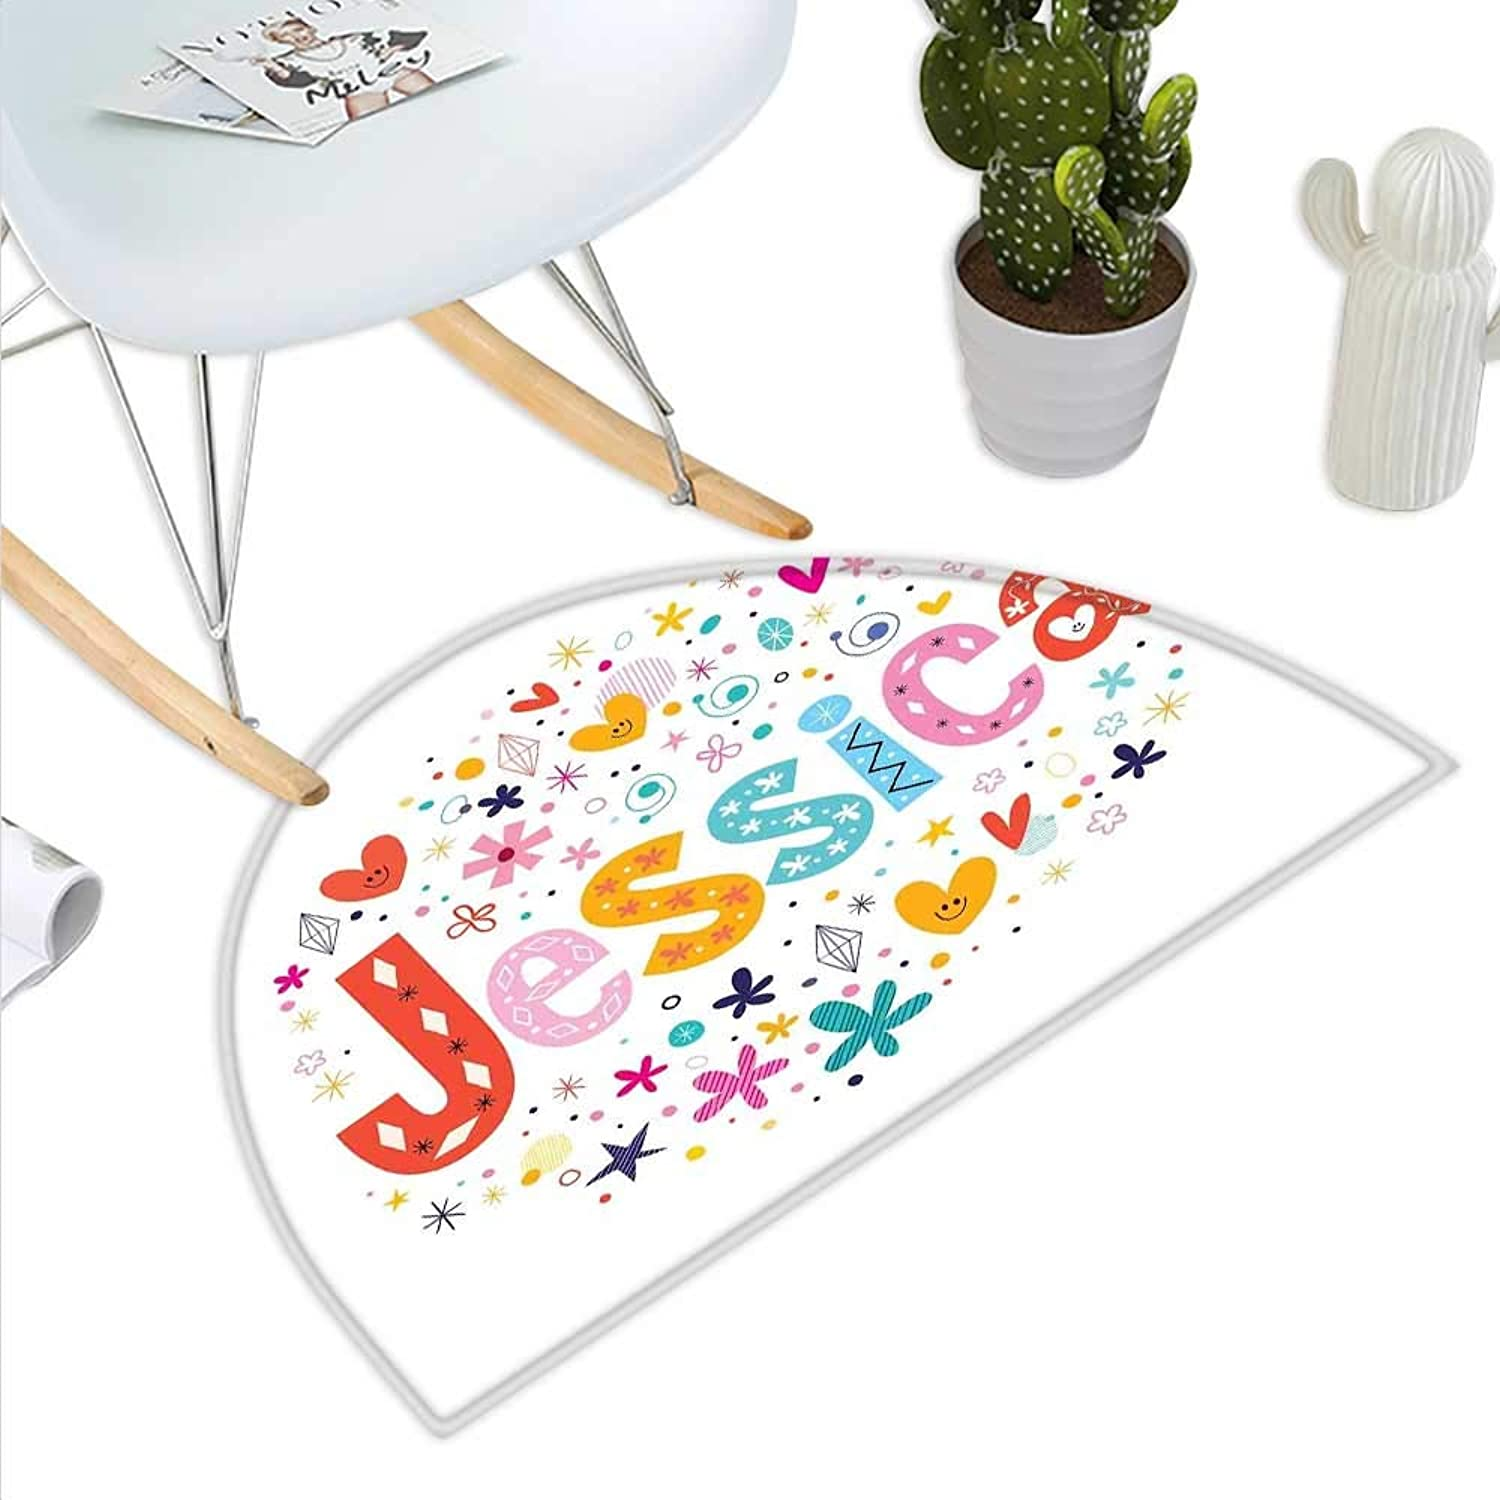 Jessica Semicircle Doormat Retro colorful Motifs Swirls Chevron Zigzags and Happy Hearts Ornate Dots Backdrop Halfmoon doormats H 27.5  xD 41.3  Multicolor